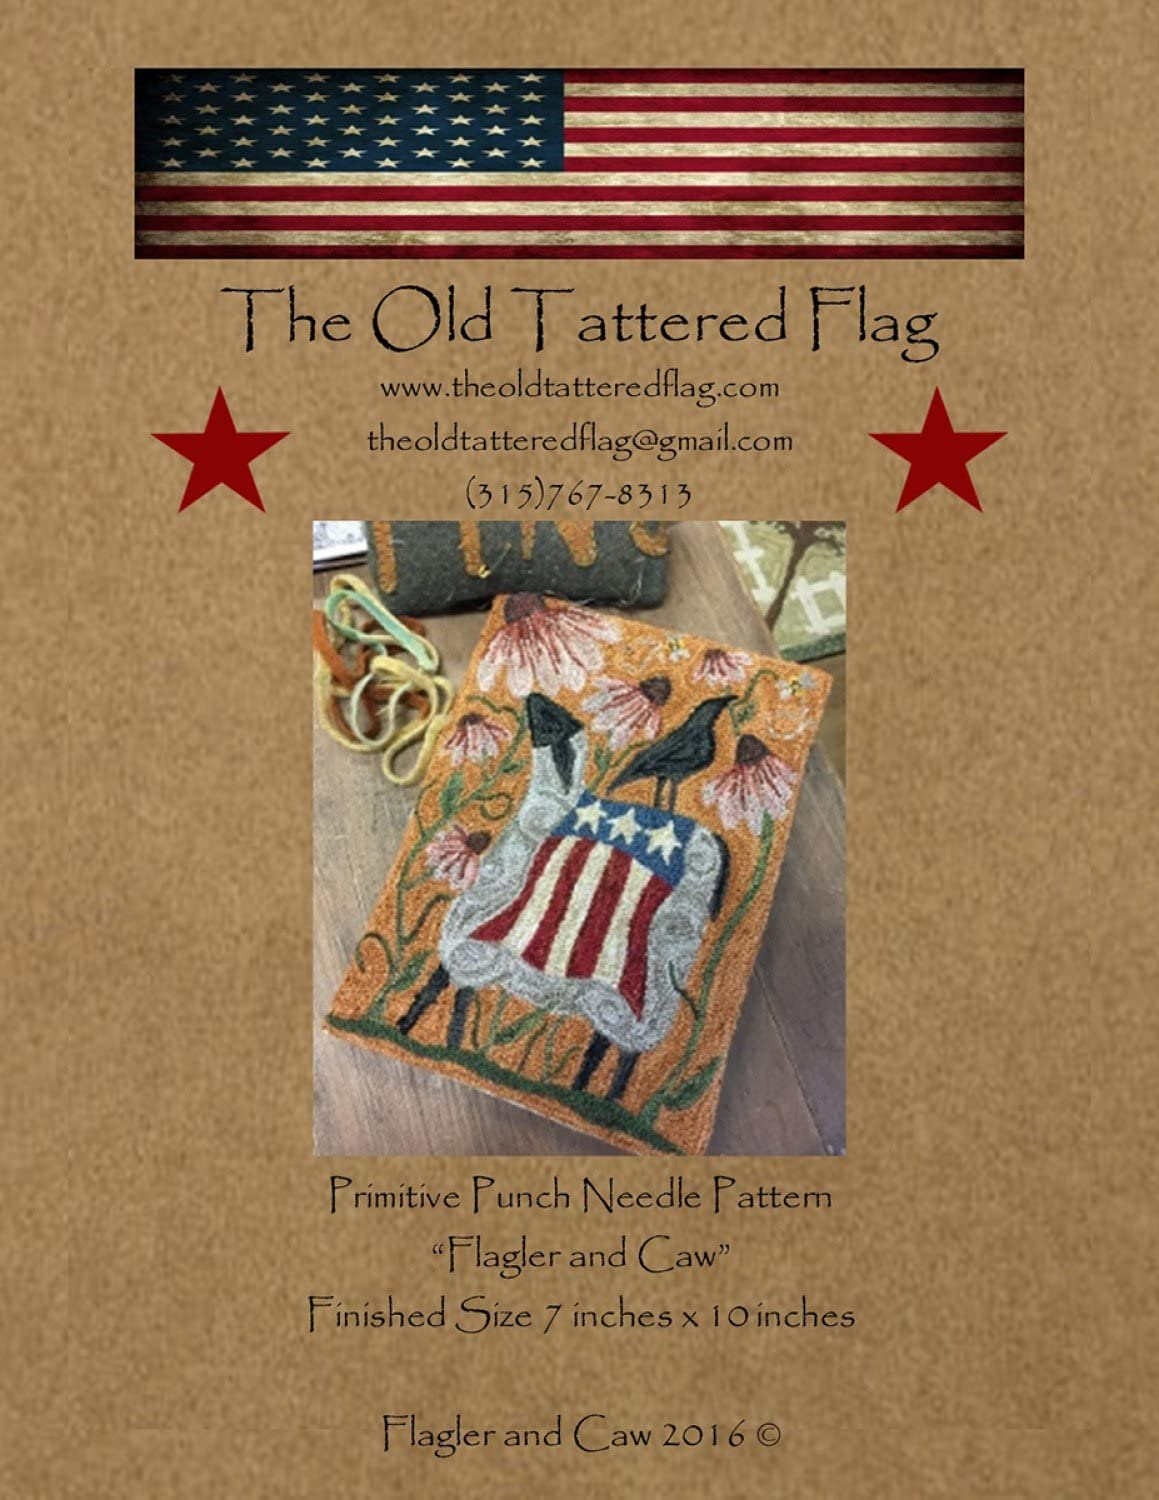 Flagler and Caw Patriotic Sheep Crow Punch Needle Embroidery Old Tattered Flag Pattern